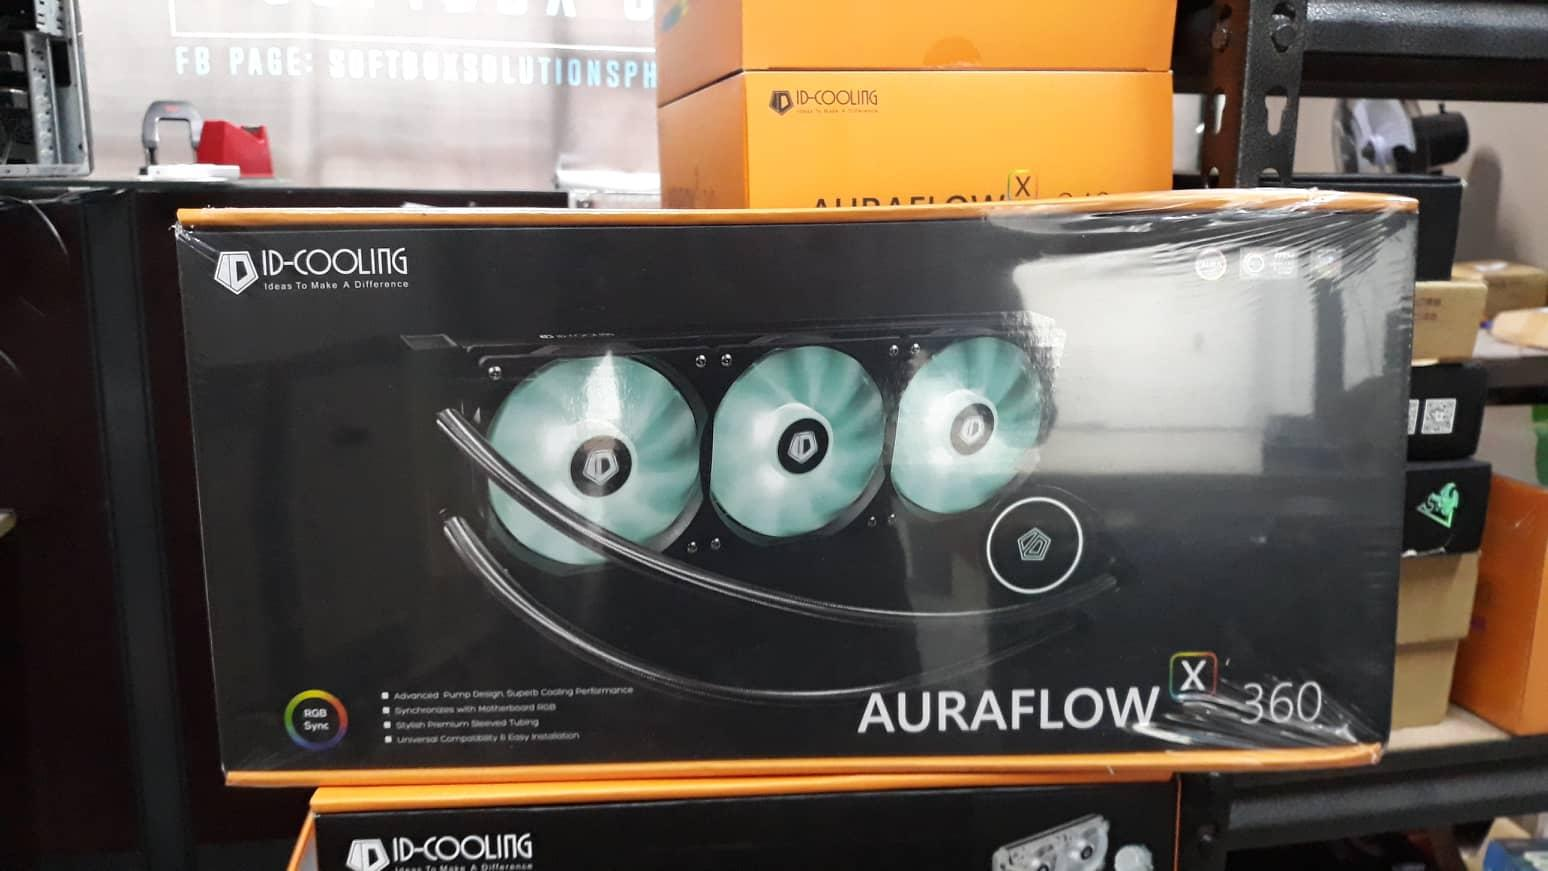 Id-Cooling Auraflow X 360 Rgb Aio By Softboxsolutionsph.